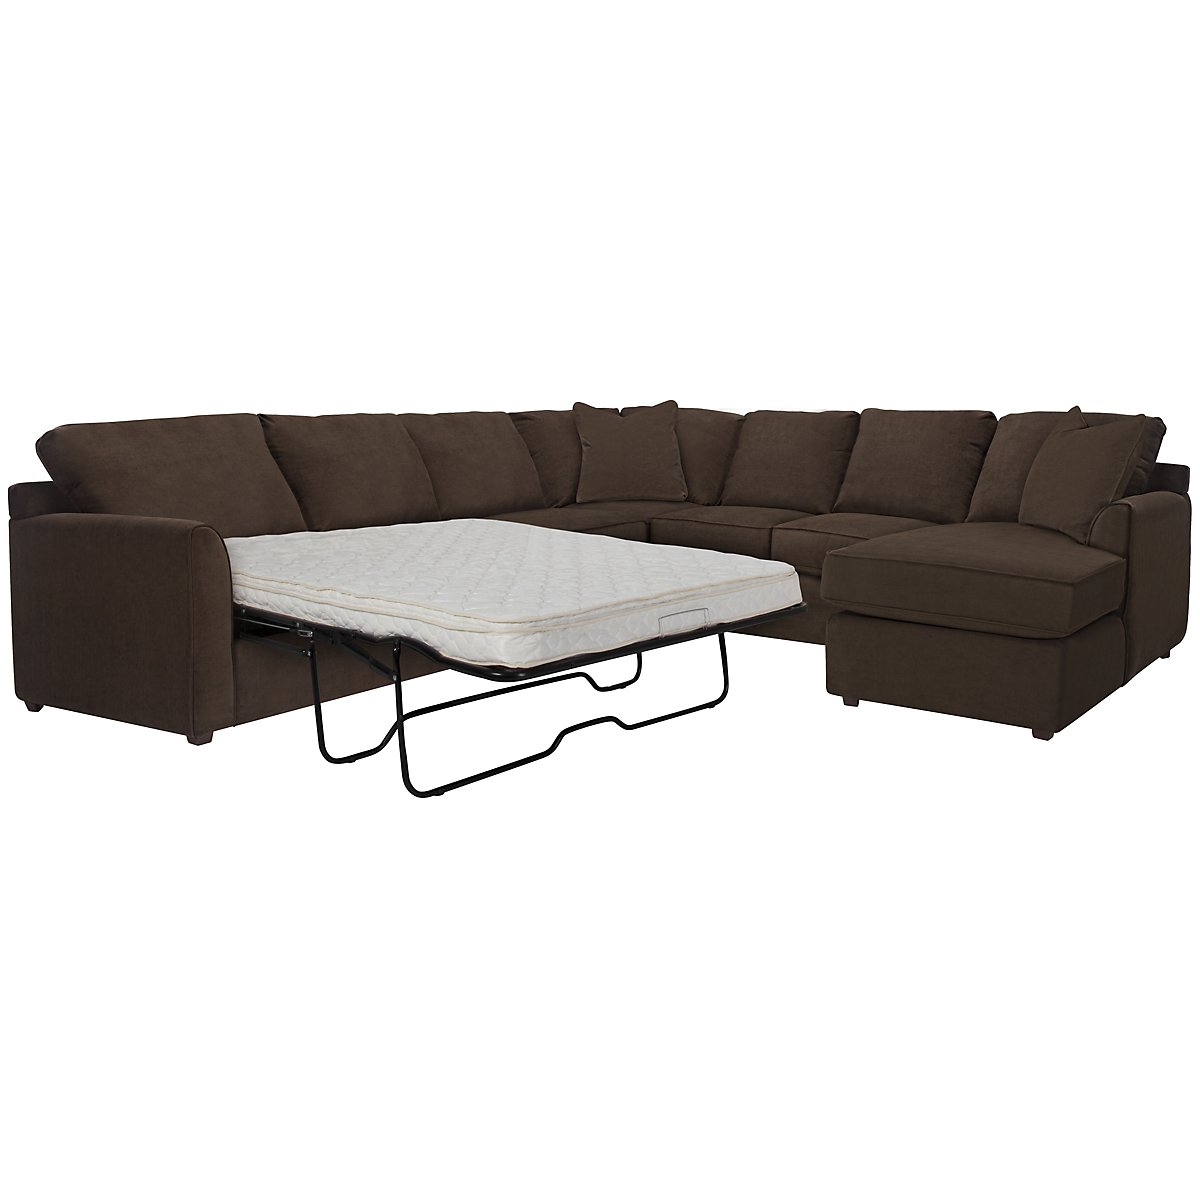 Express3 Dark Brown Microfiber Right Chaise Innerspring Sleeper Sectional